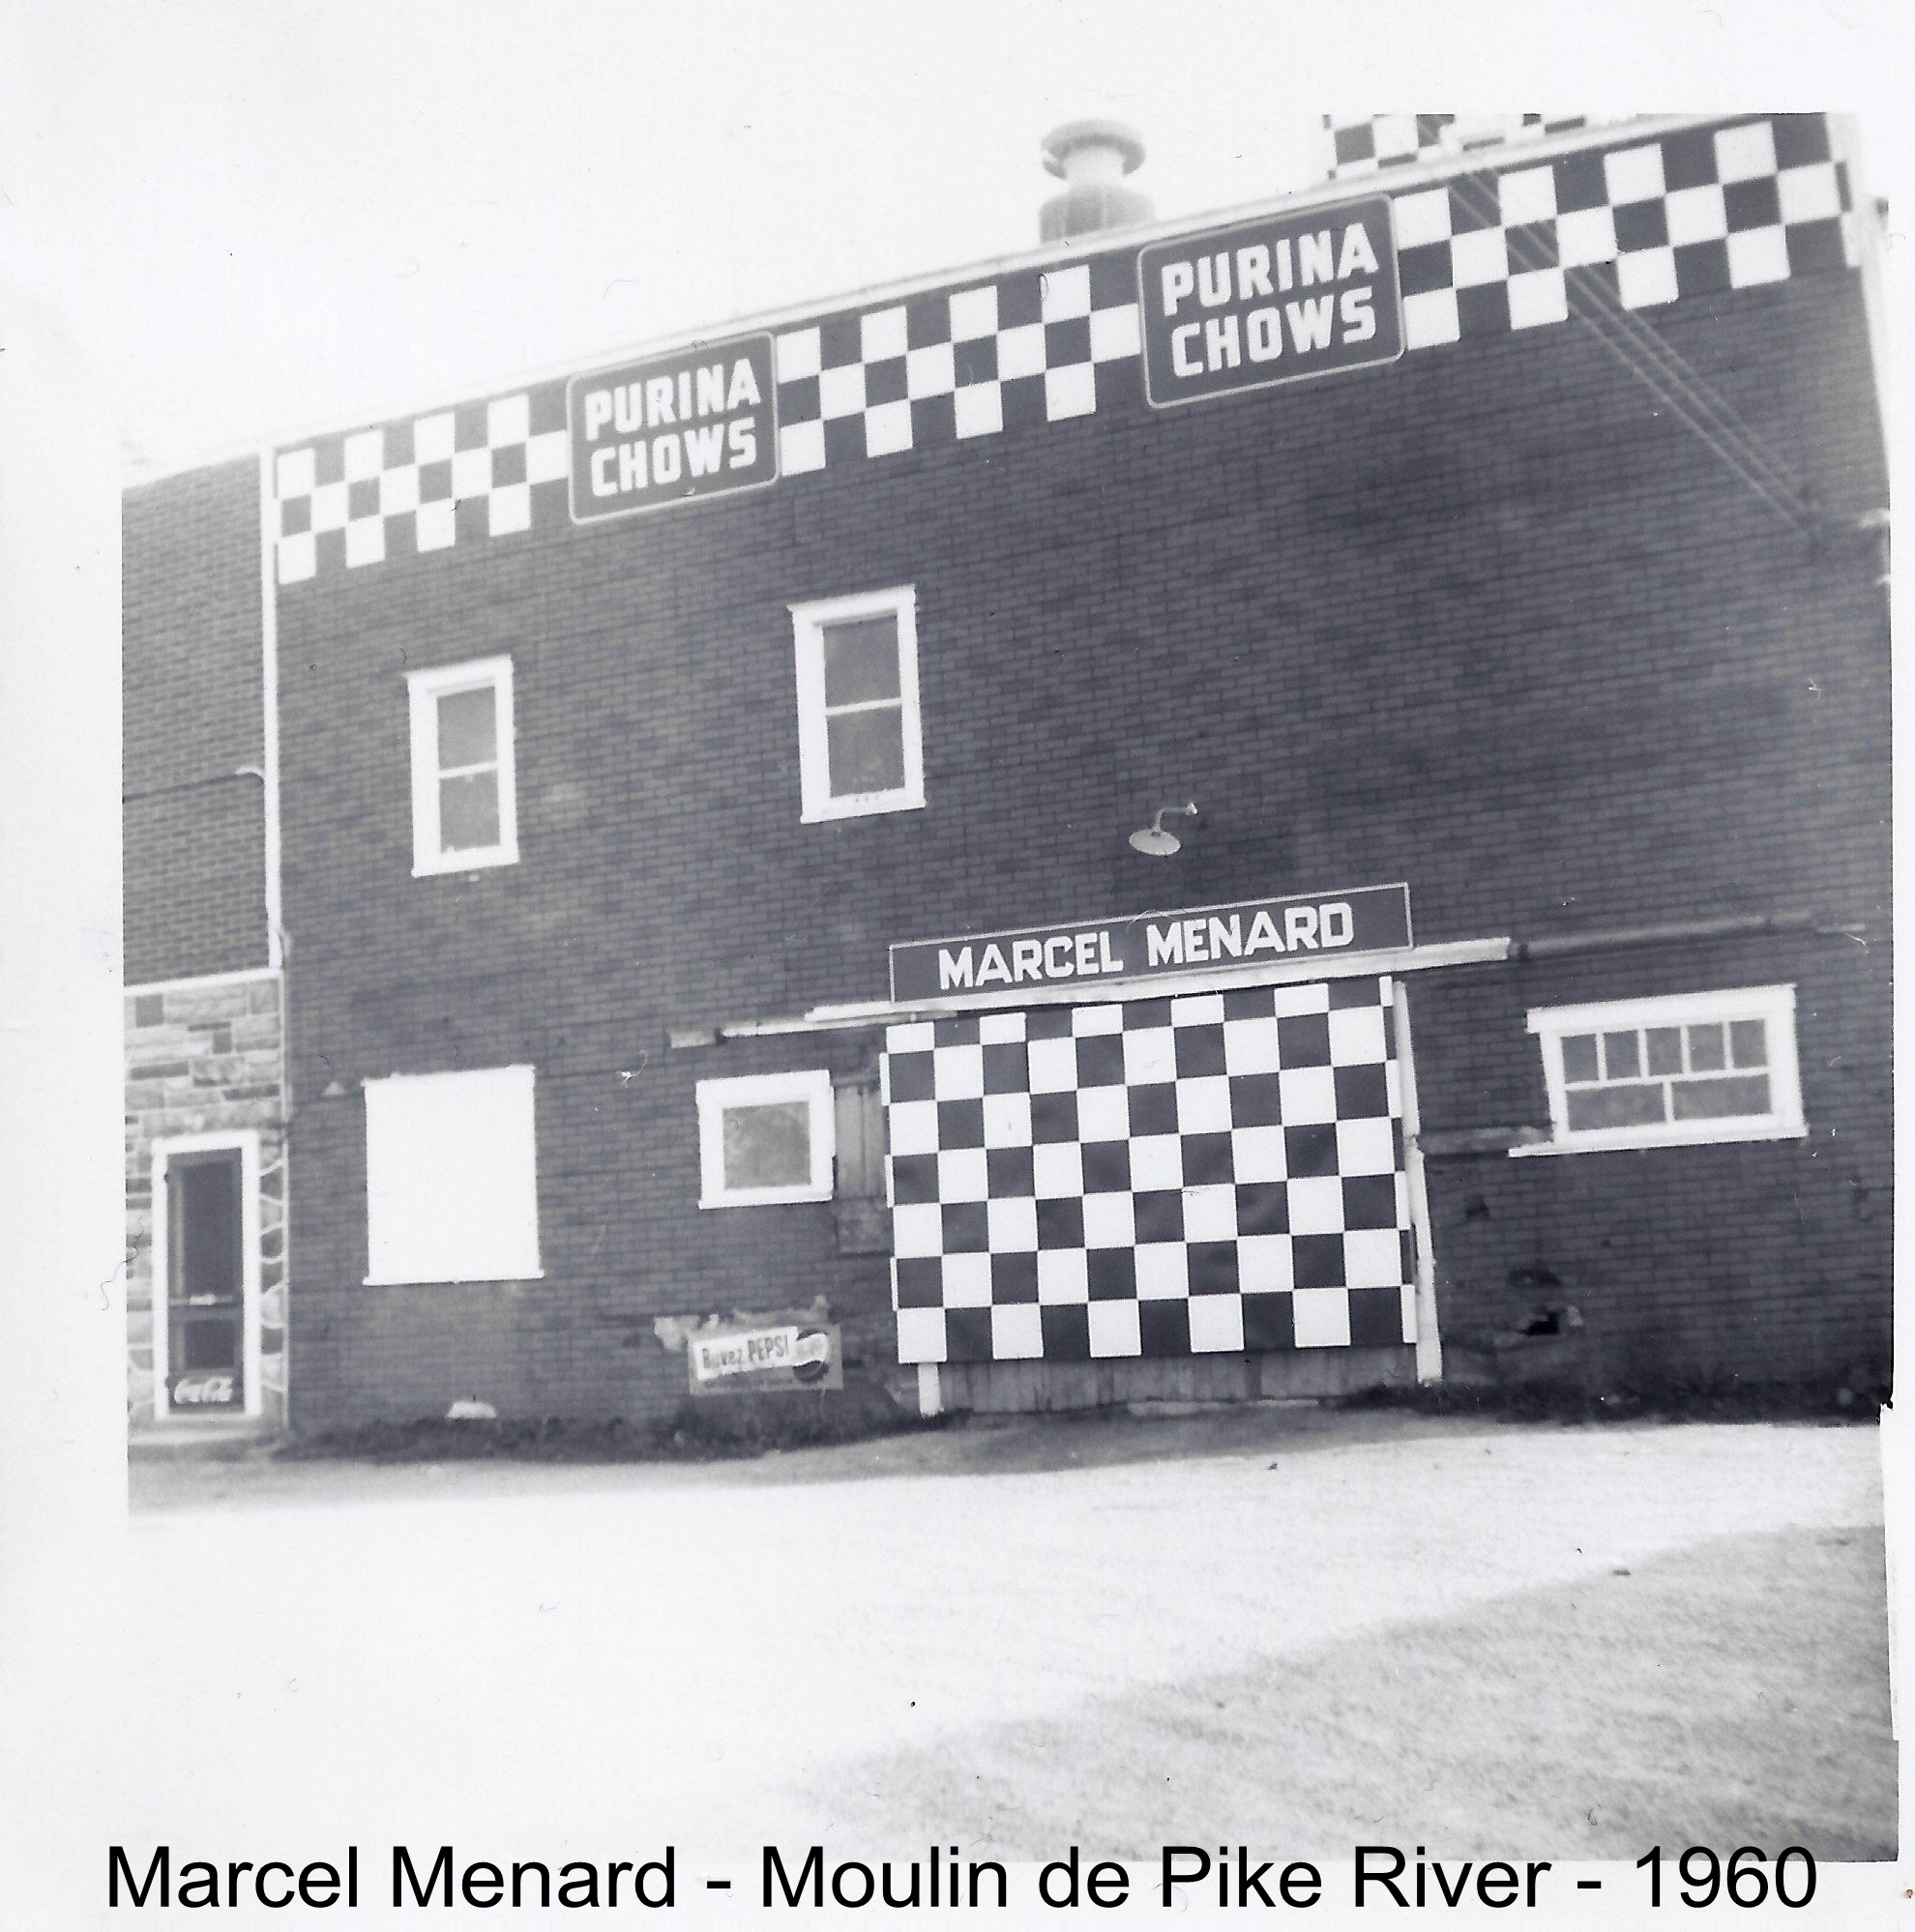 Menard Marcel Moulin Pike River 1960